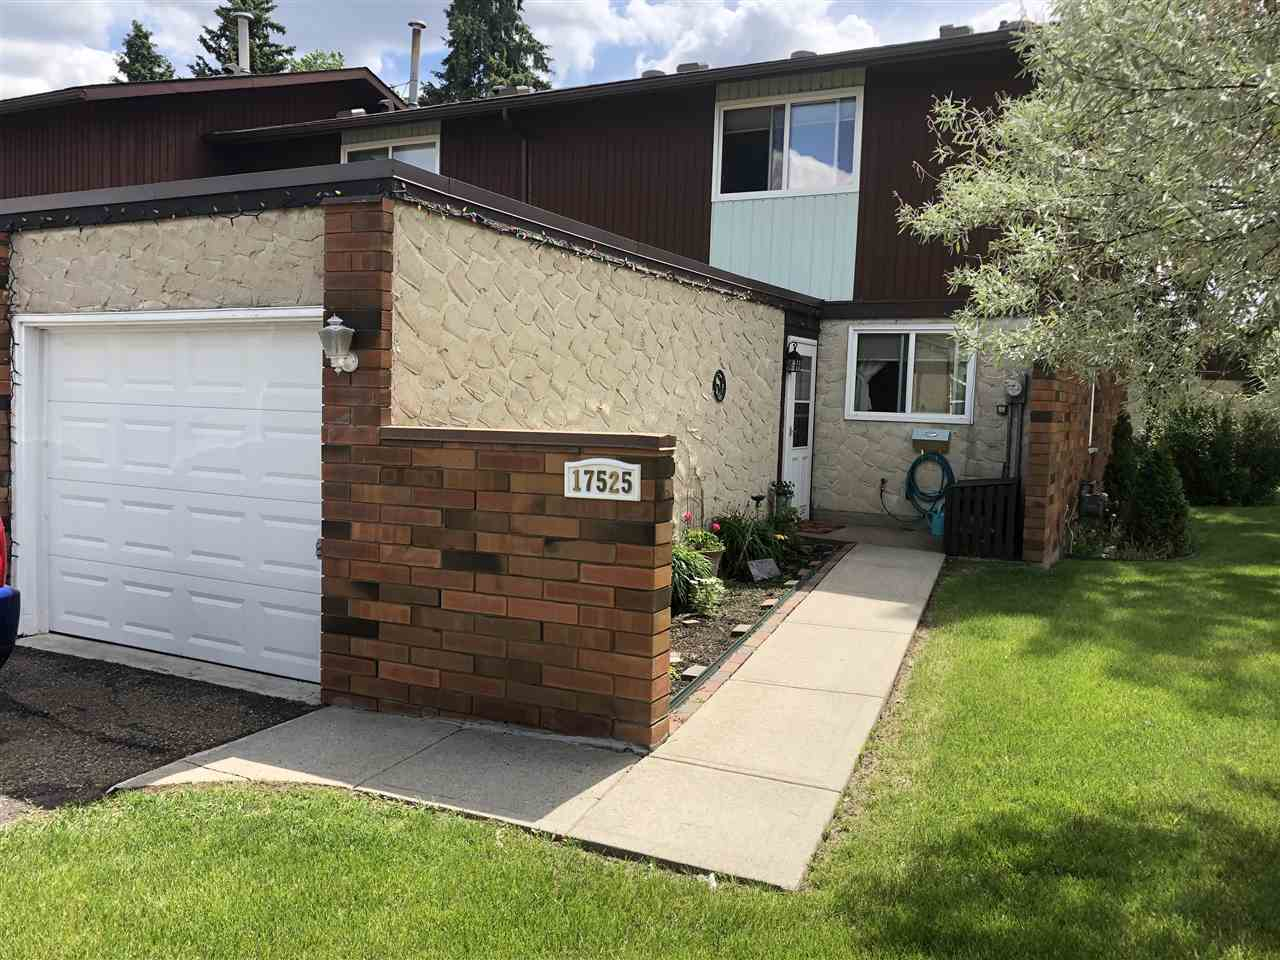 MLS® listing #E4166599 for sale located at 17525 77 Avenue